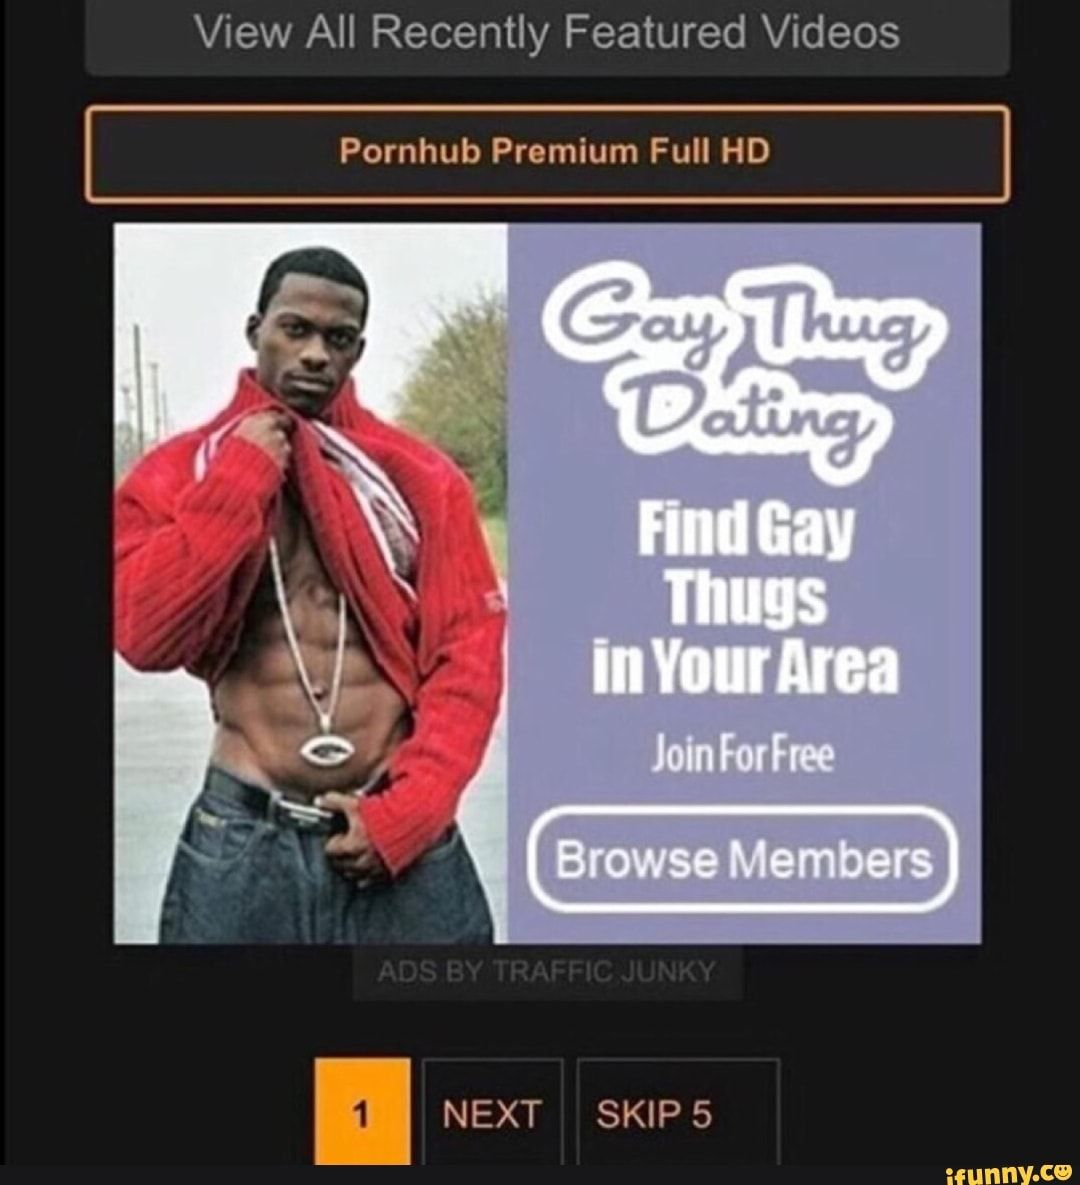 Gay thug dating sites 2. list the configuration options available for updating the os